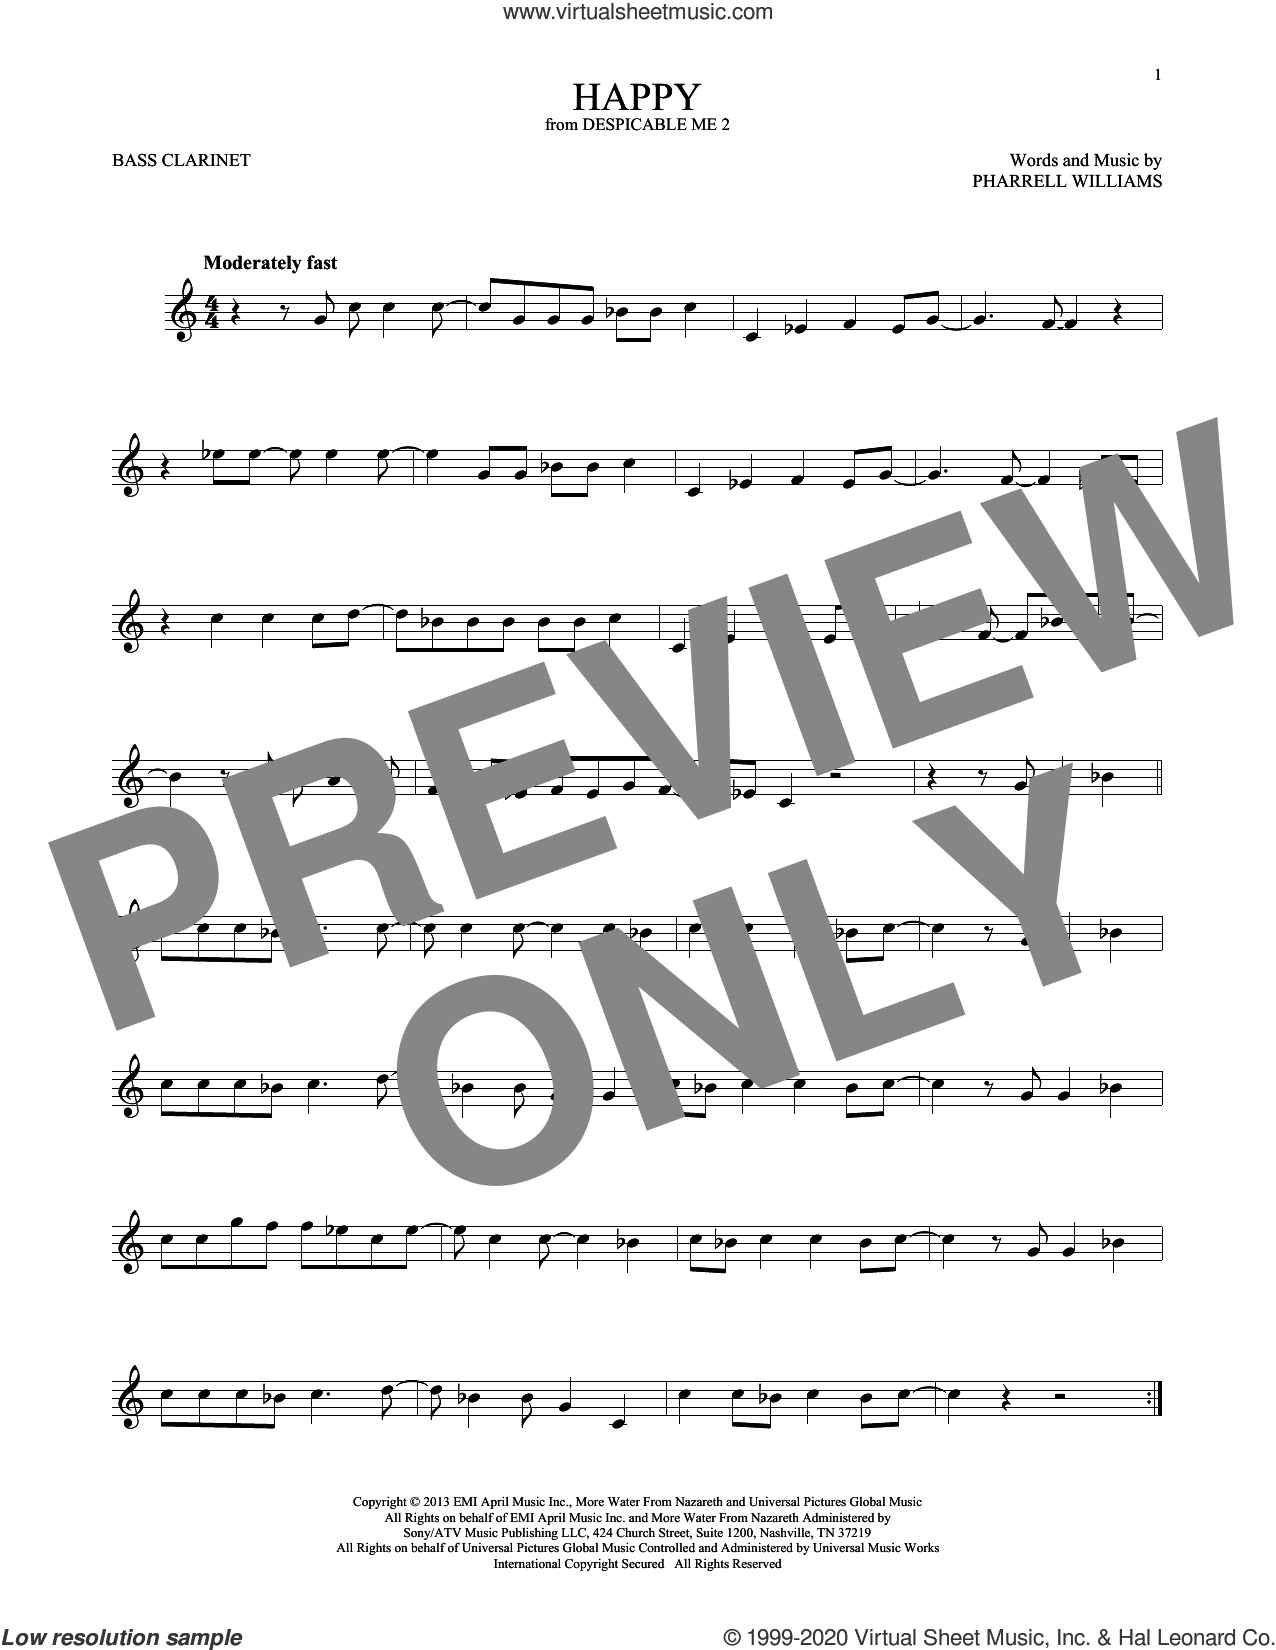 Happy (from Despicable Me 2) sheet music for Bass Clarinet Solo (clarinetto basso) by Pharrell Williams, intermediate skill level